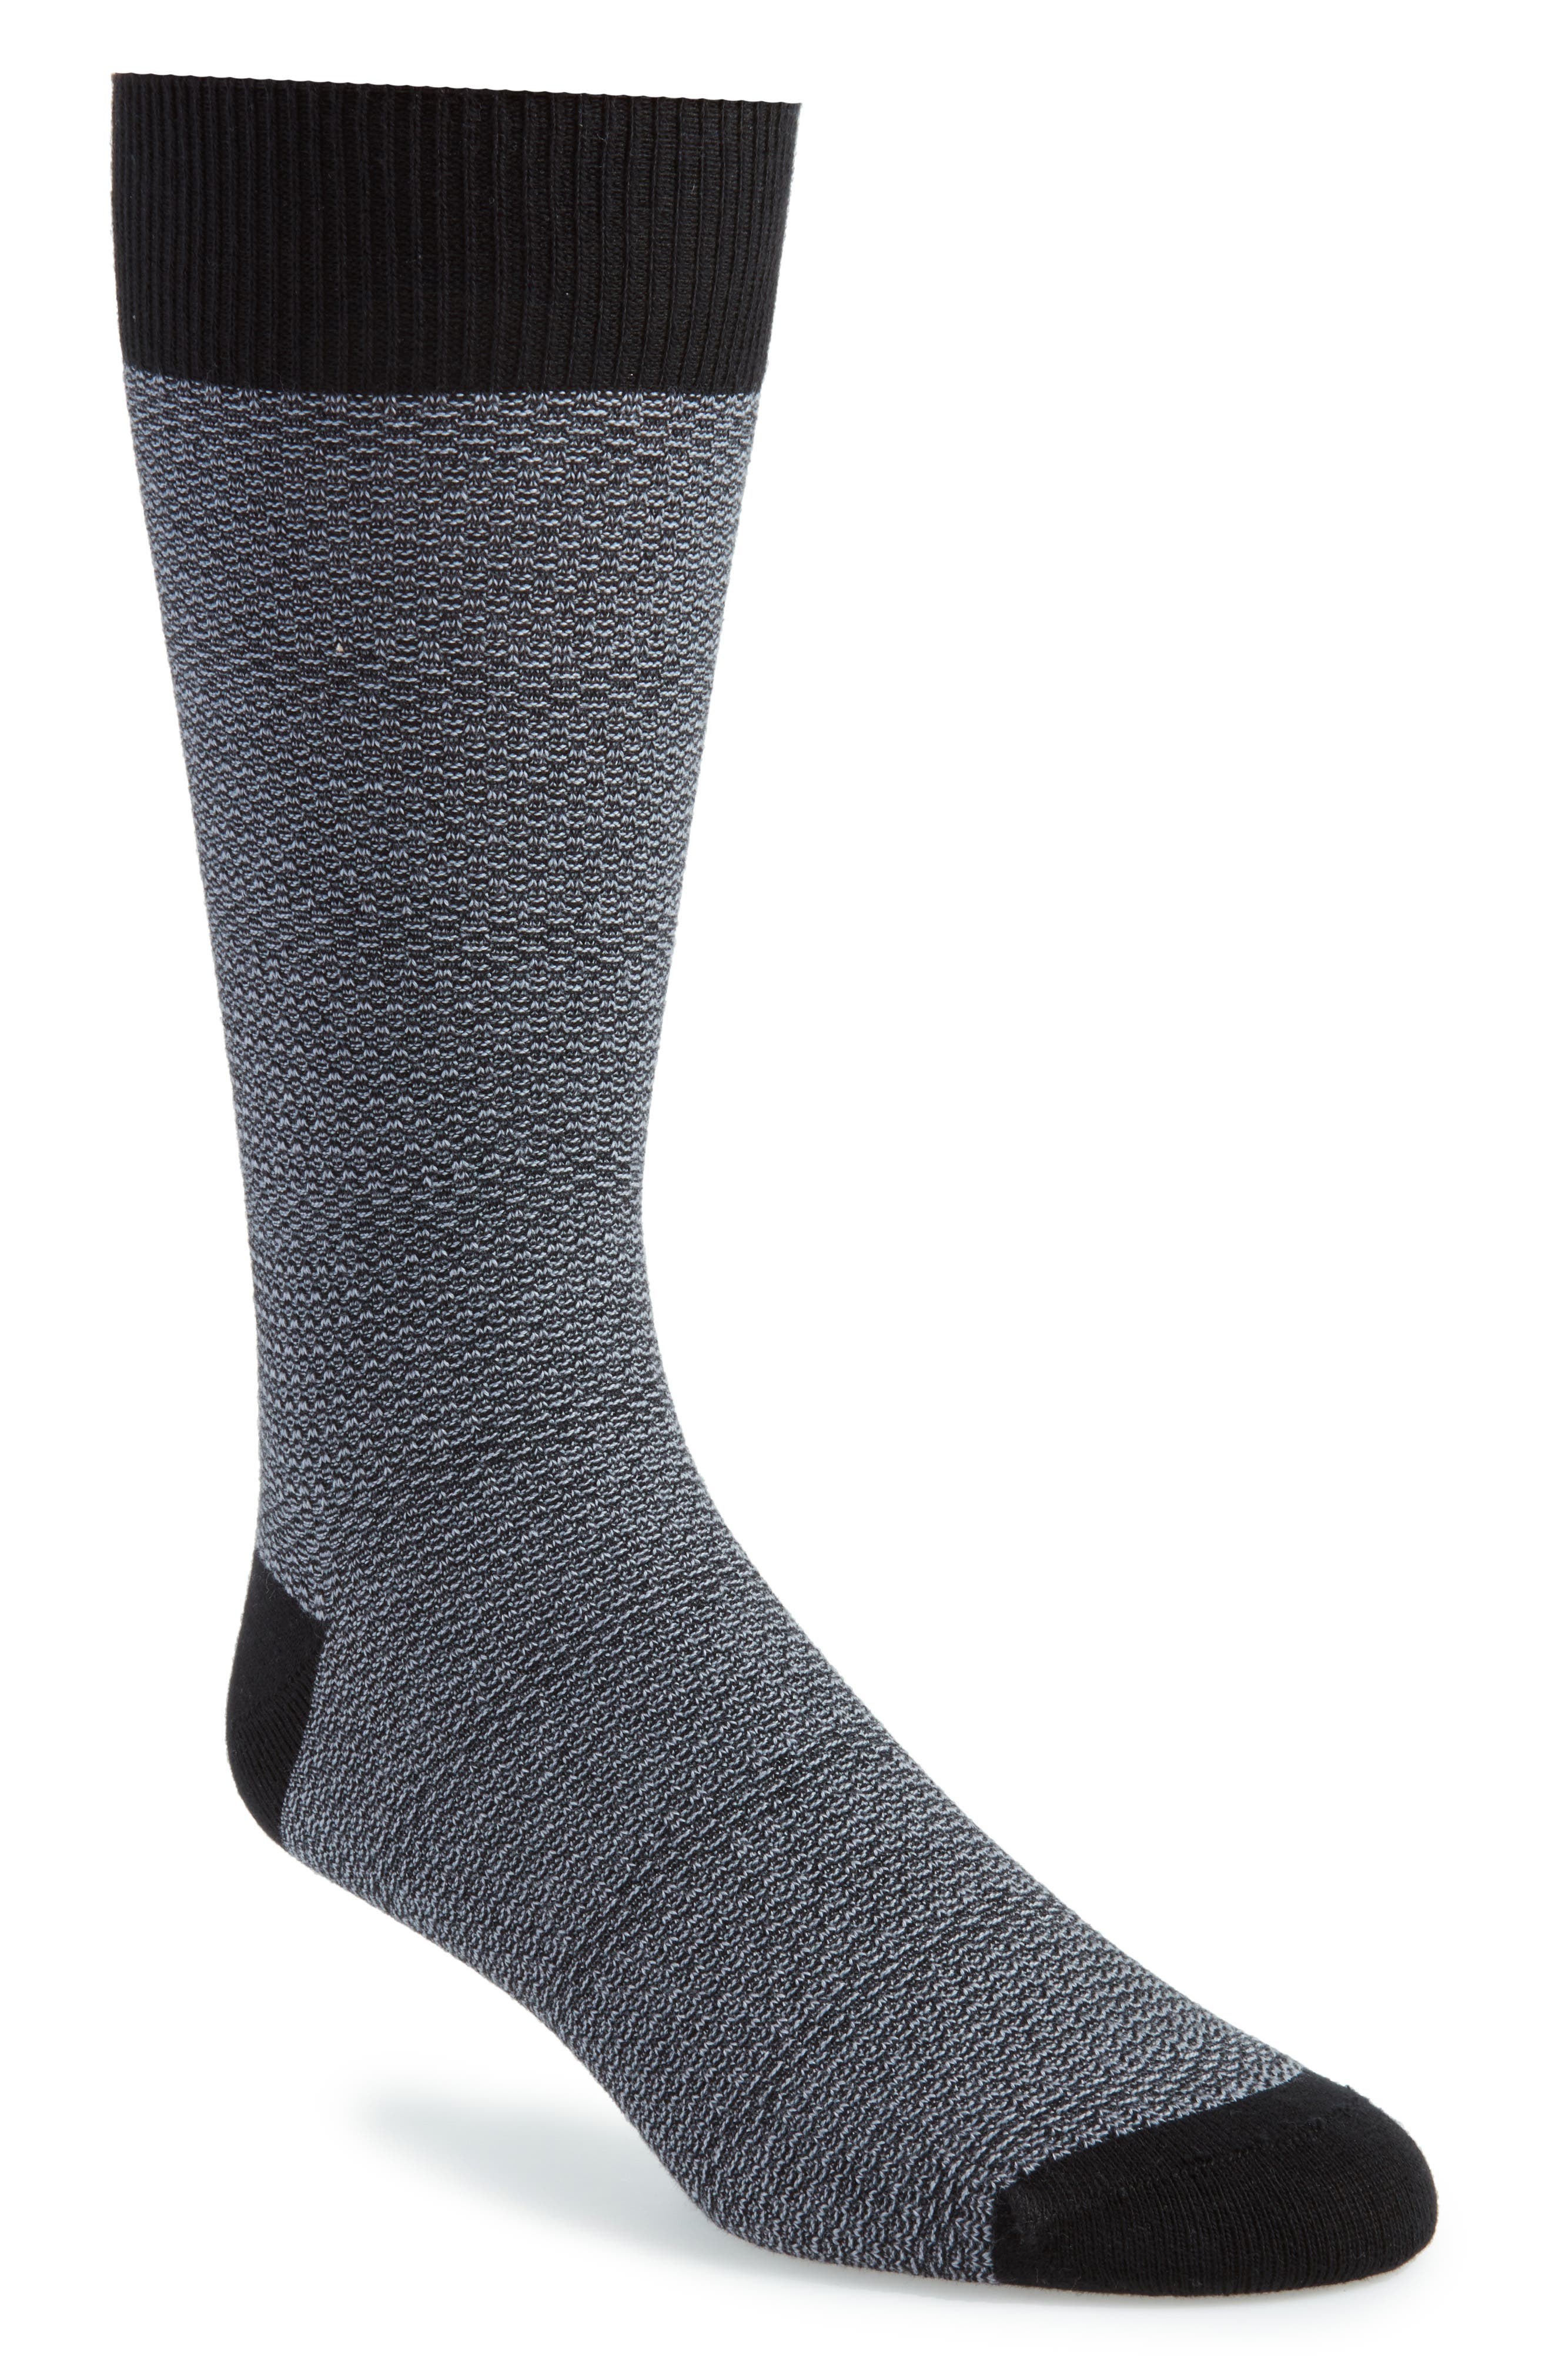 Sophshe Solid Socks,                             Main thumbnail 1, color,                             Black